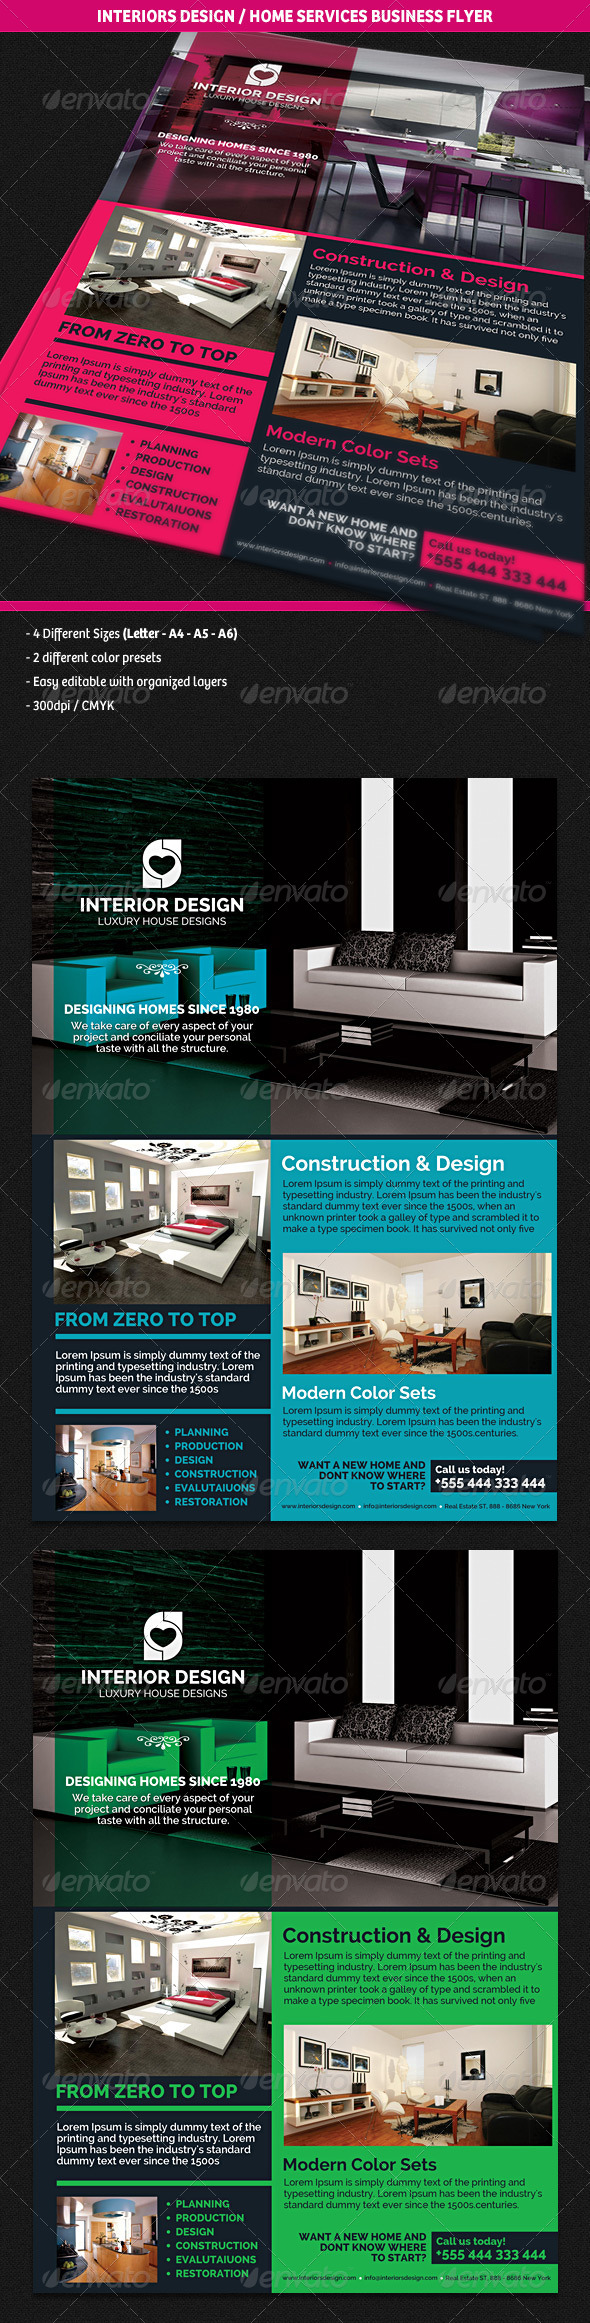 GraphicRiver Interiors Design & Home Services Business Flyer 4636125